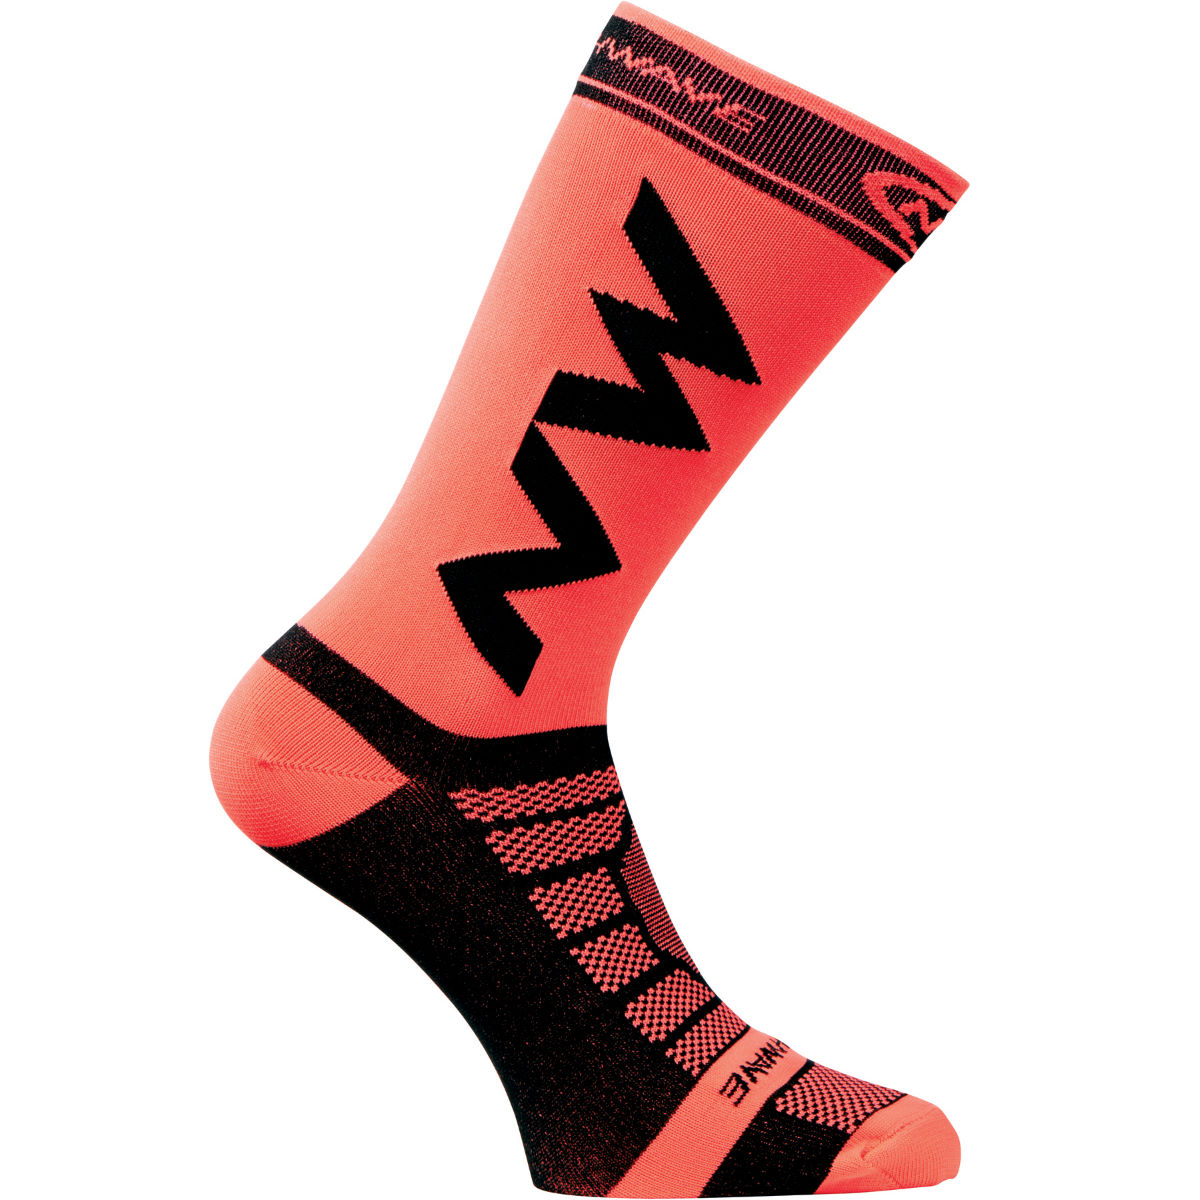 Chaussettes Northwave Extreme Light Pro - S Black/Lobster Orange